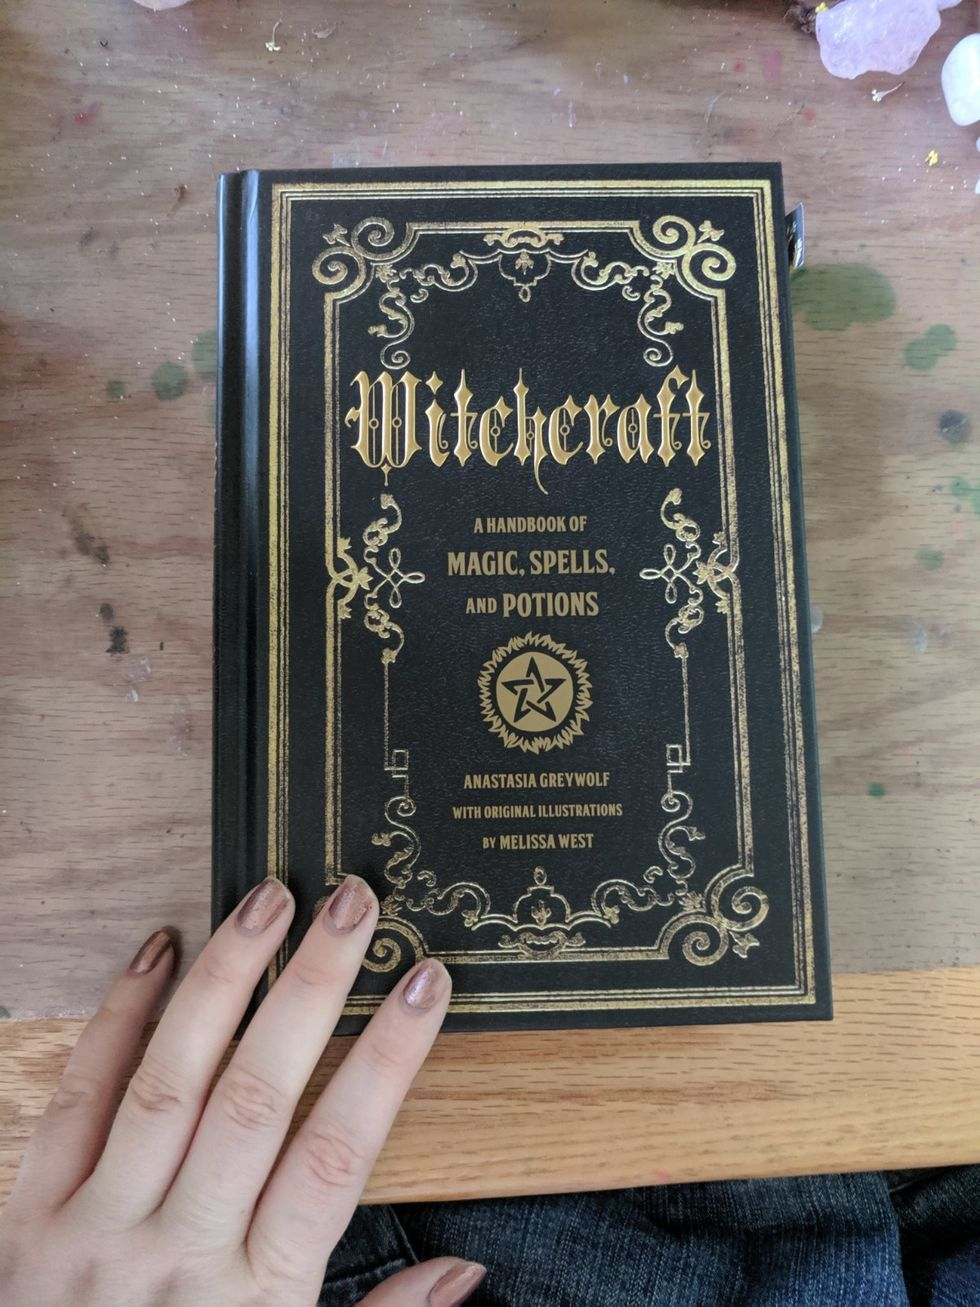 How I Got Into Witchcraft